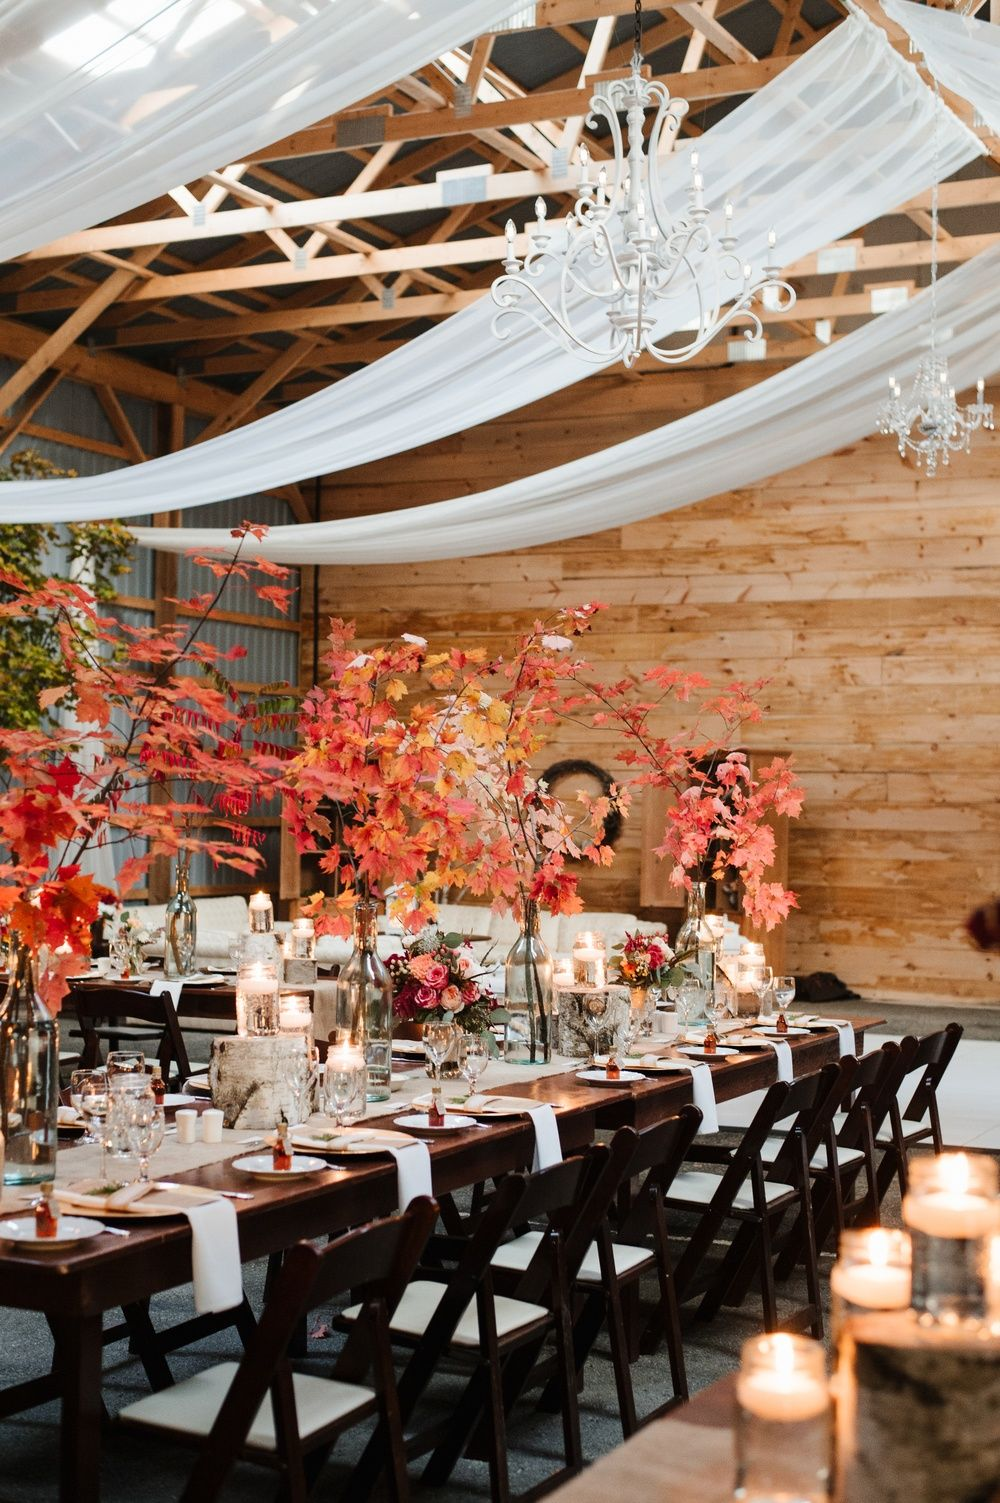 Wedding decorations rustic october 2018 The Rustic Chic Fall Wedding of our Pinterest Dreams in